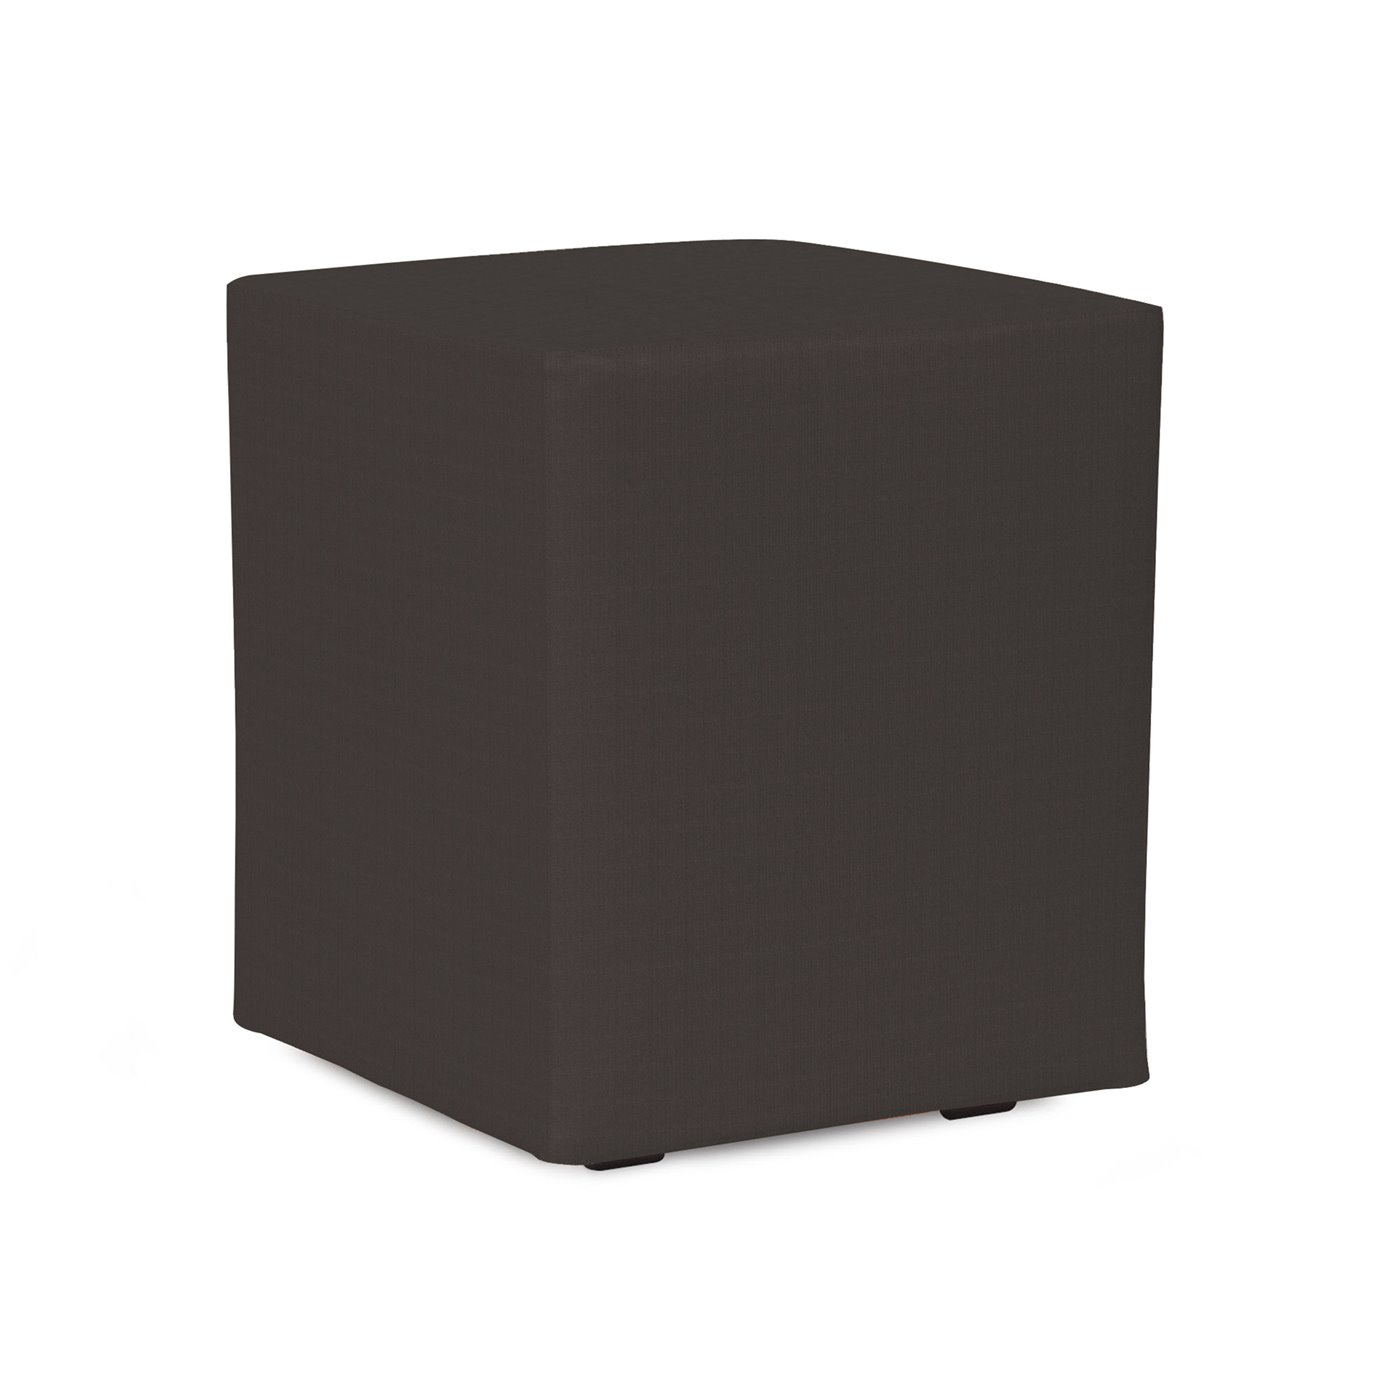 Howard Elliott Universal Cube Cover Sunbrella Outdoor Seascape Charcoal - Cover Only, Base Not Included